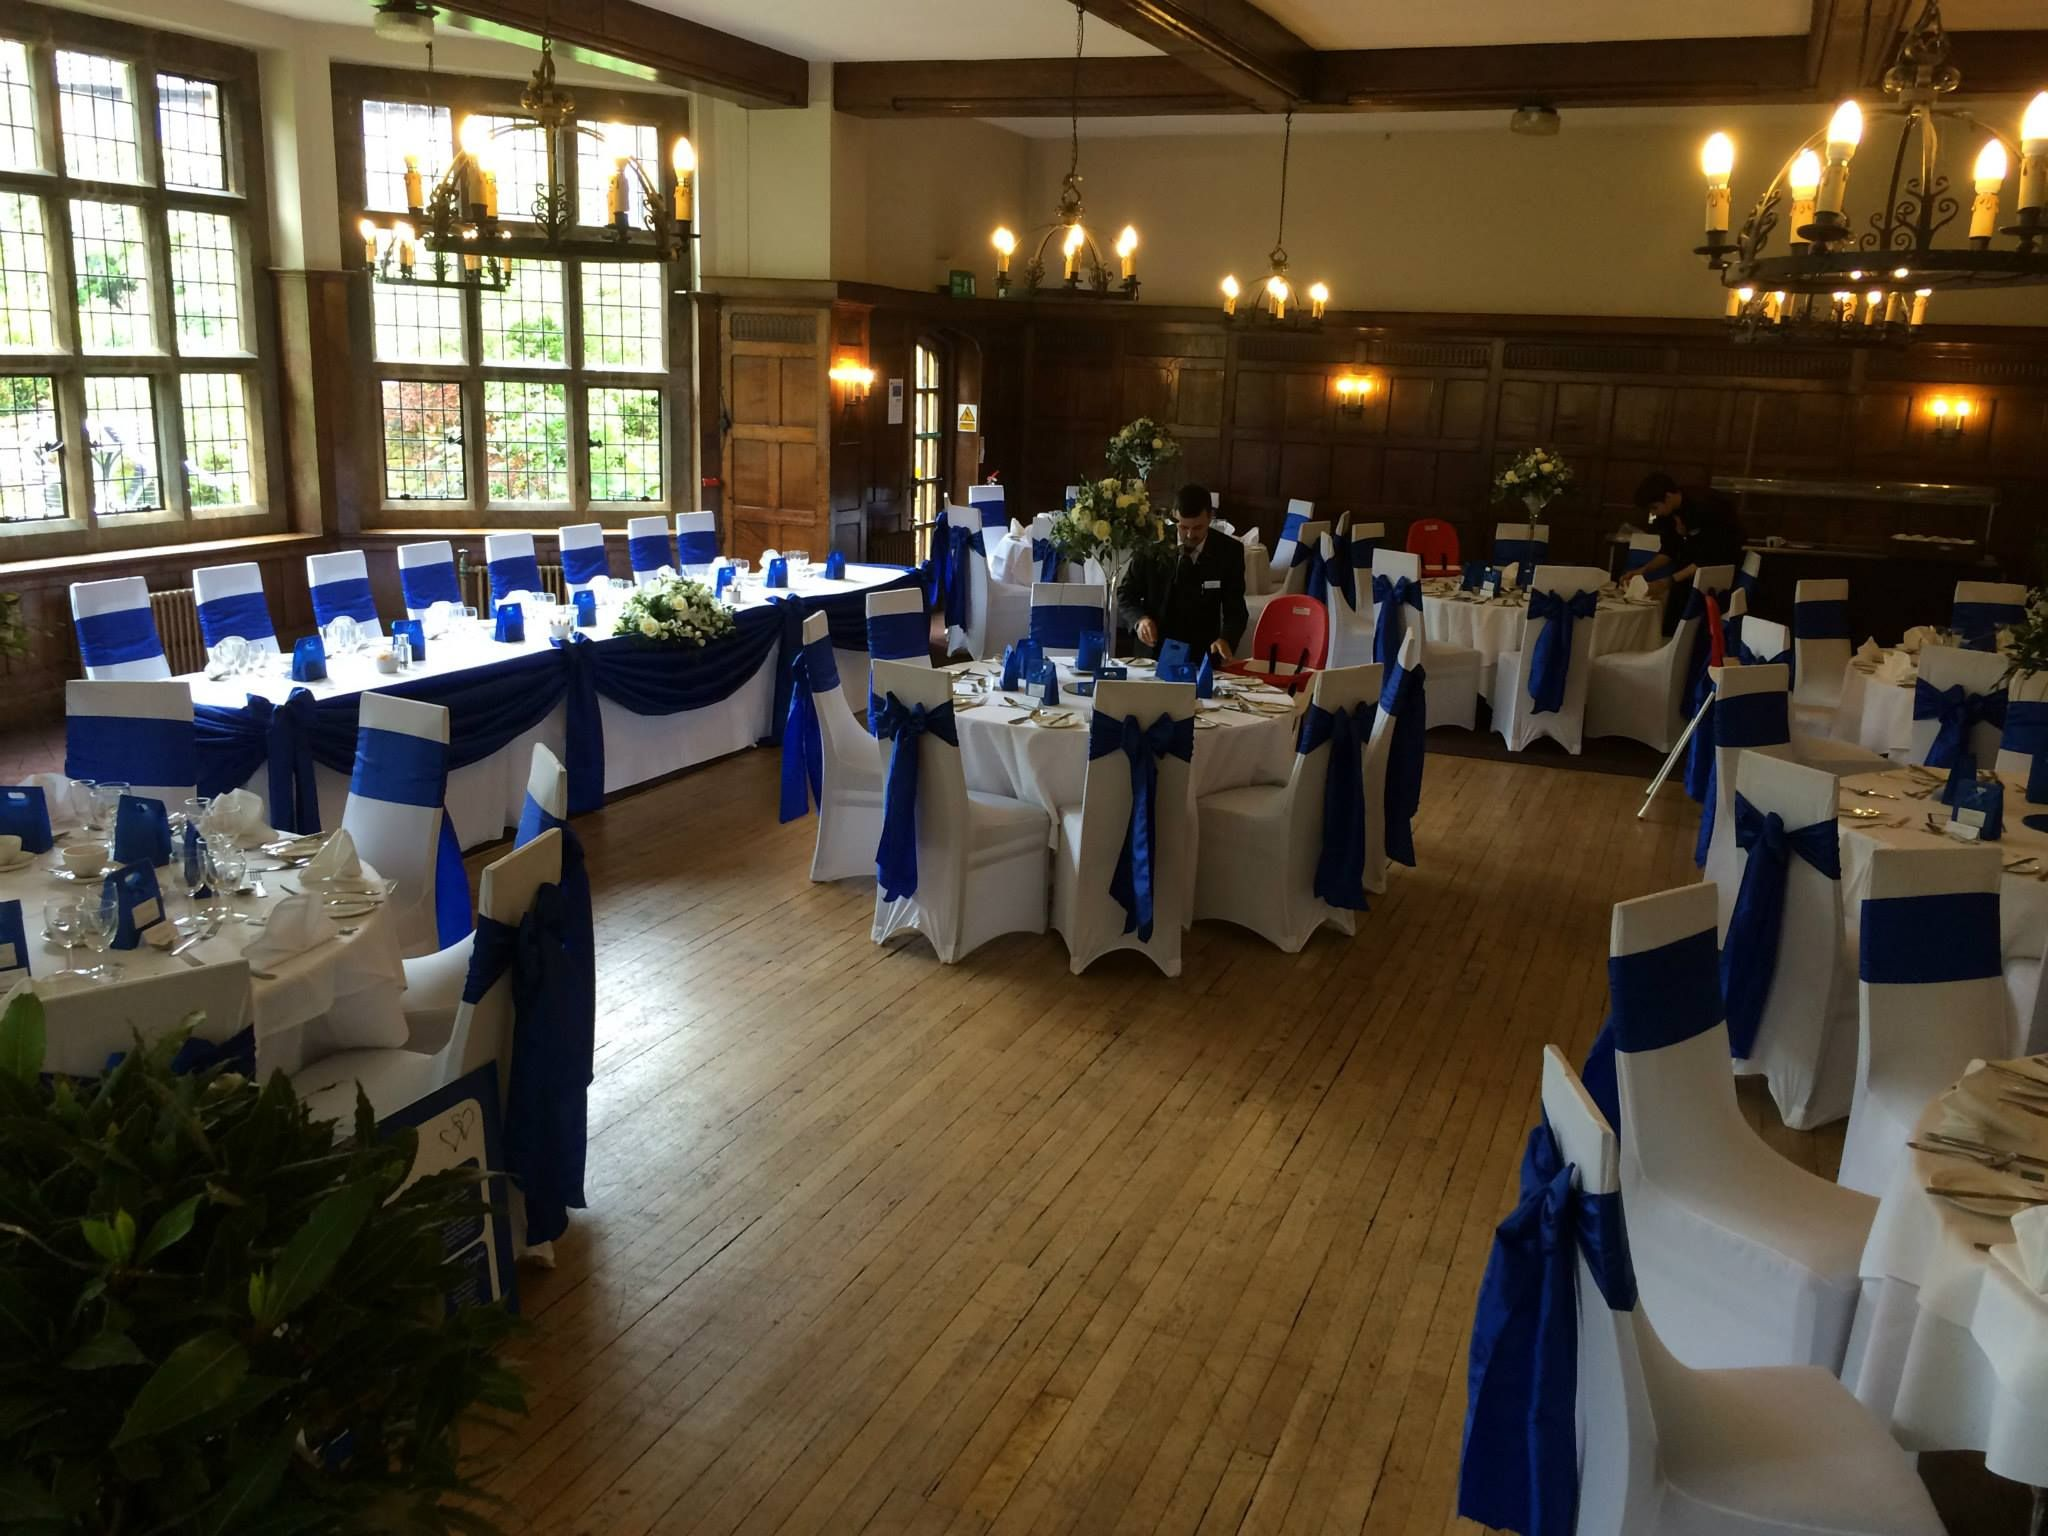 Unique wedding decoration ideas for reception  Reception room at our venue in our colour royal blue  Wedding